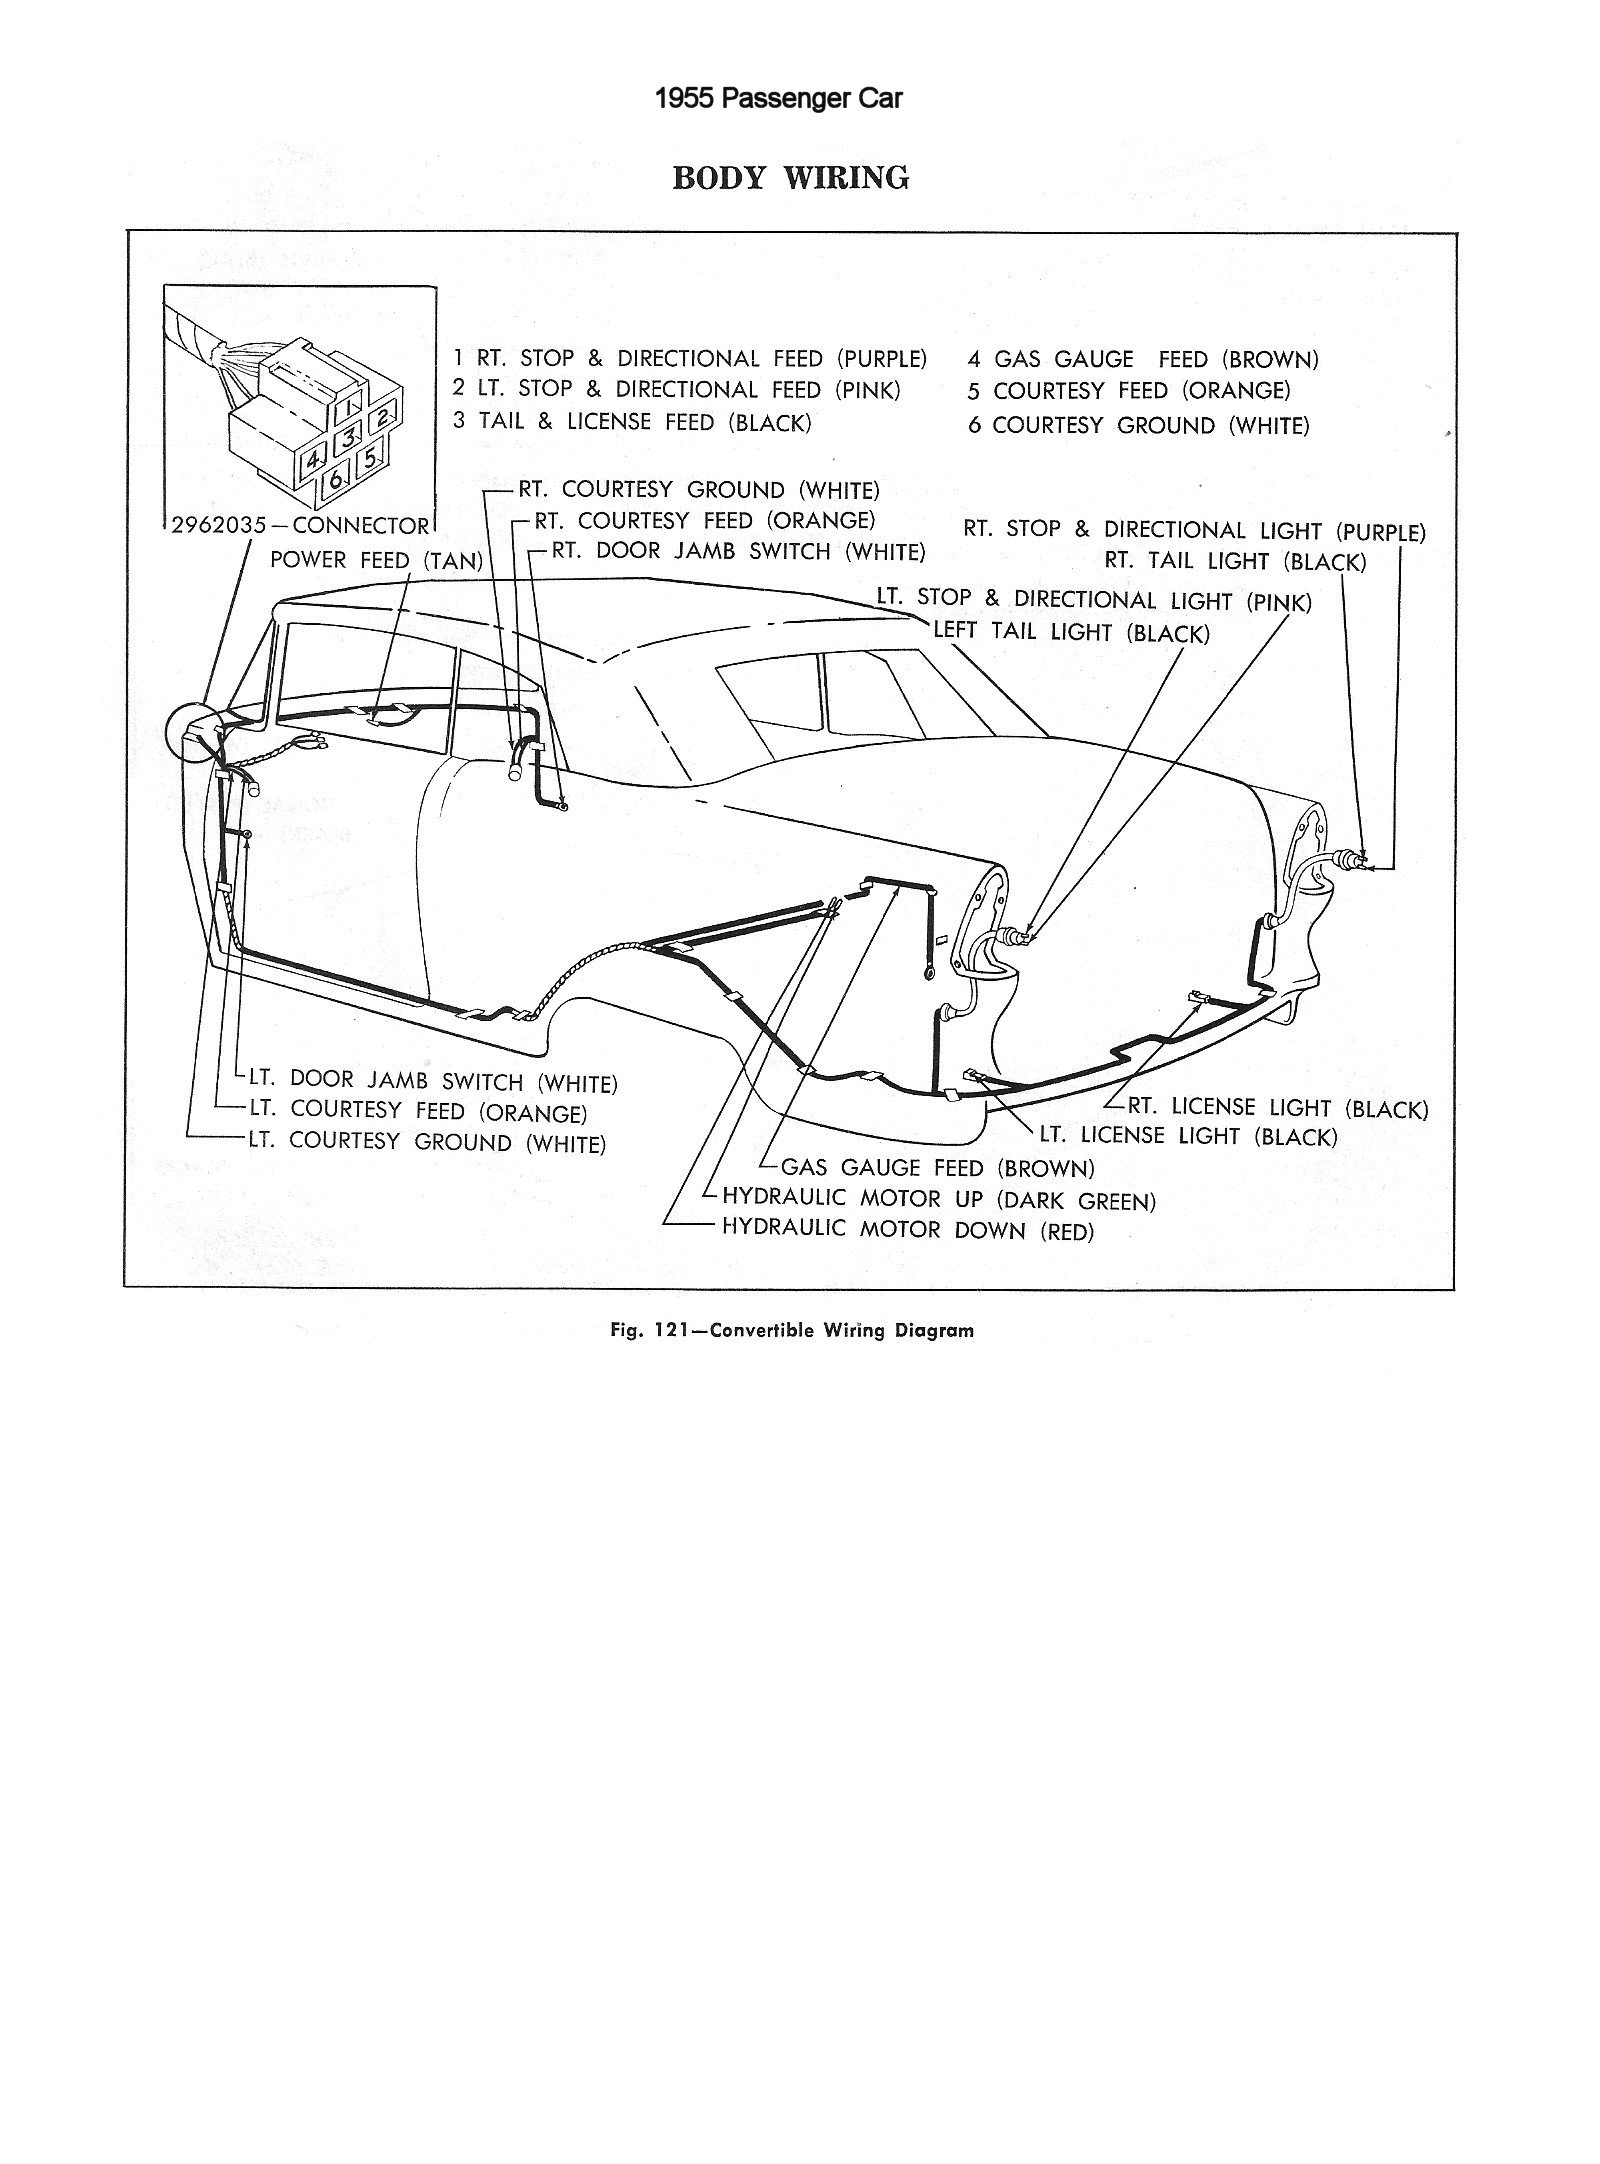 Chevy Wiring Diagrams Car Hydraulics Diagram 1955 Passenger Body